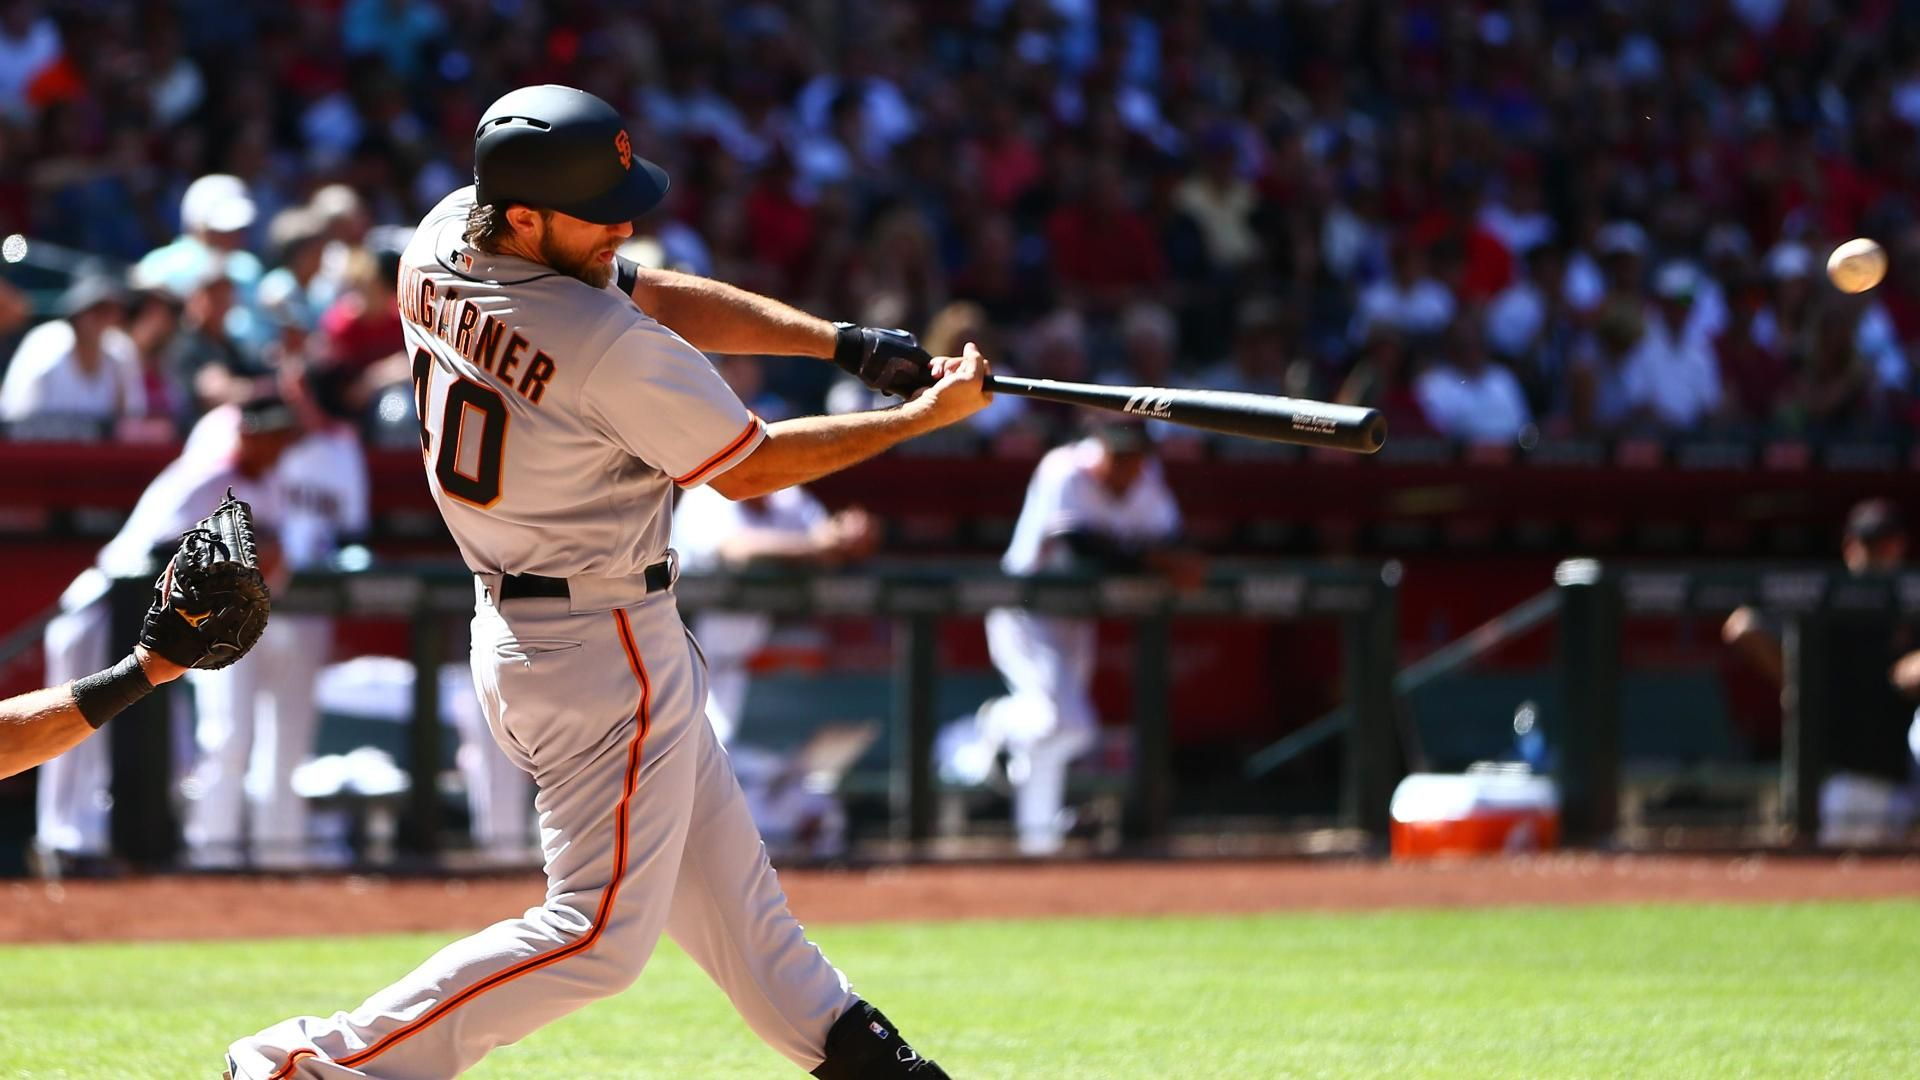 Bumgarner blasts two homers on Opening Day